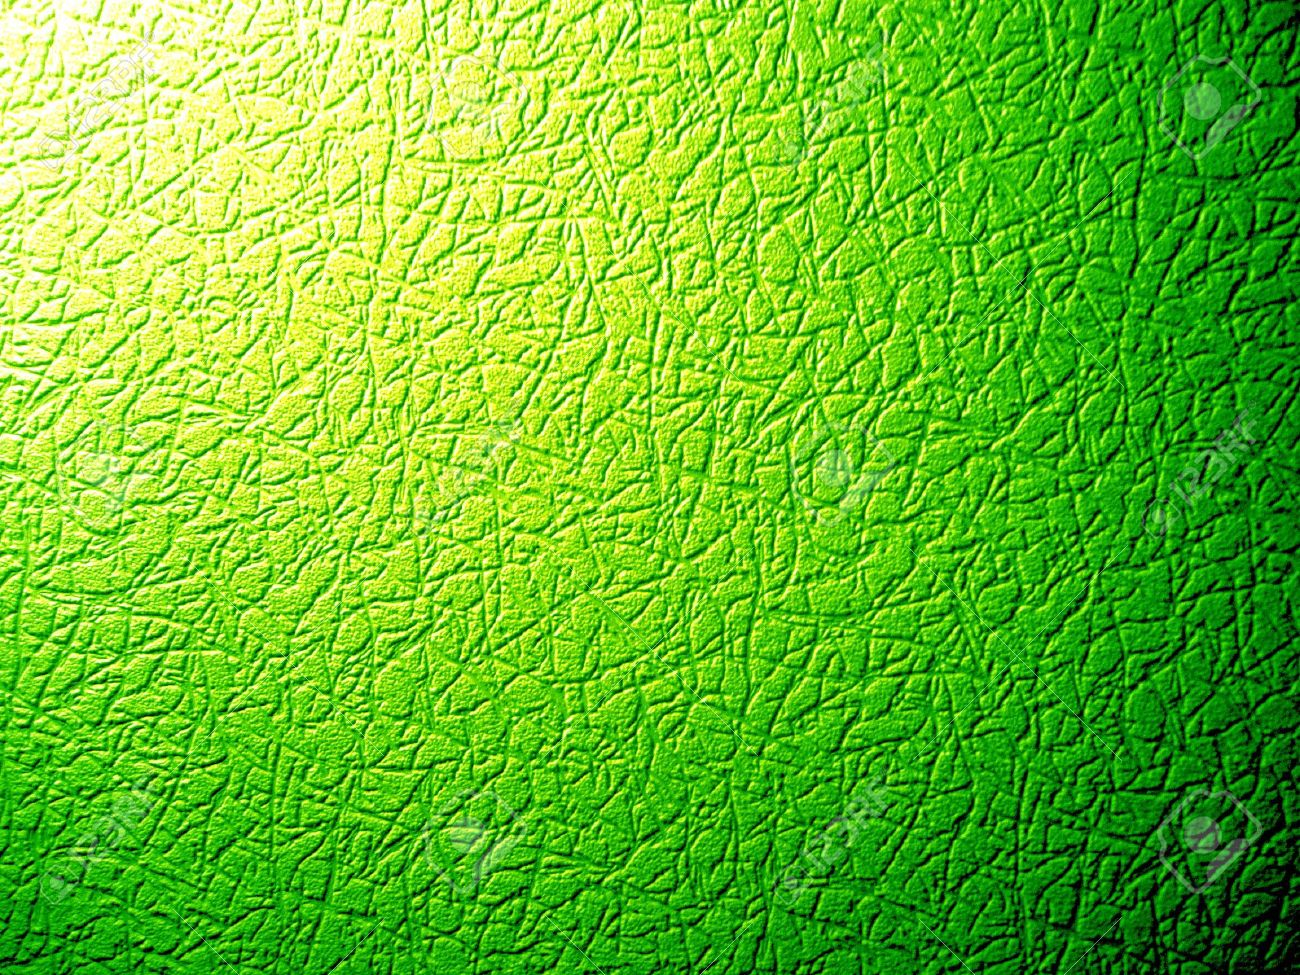 2772834-Color-background-texture-Gradient-green-skin-plate